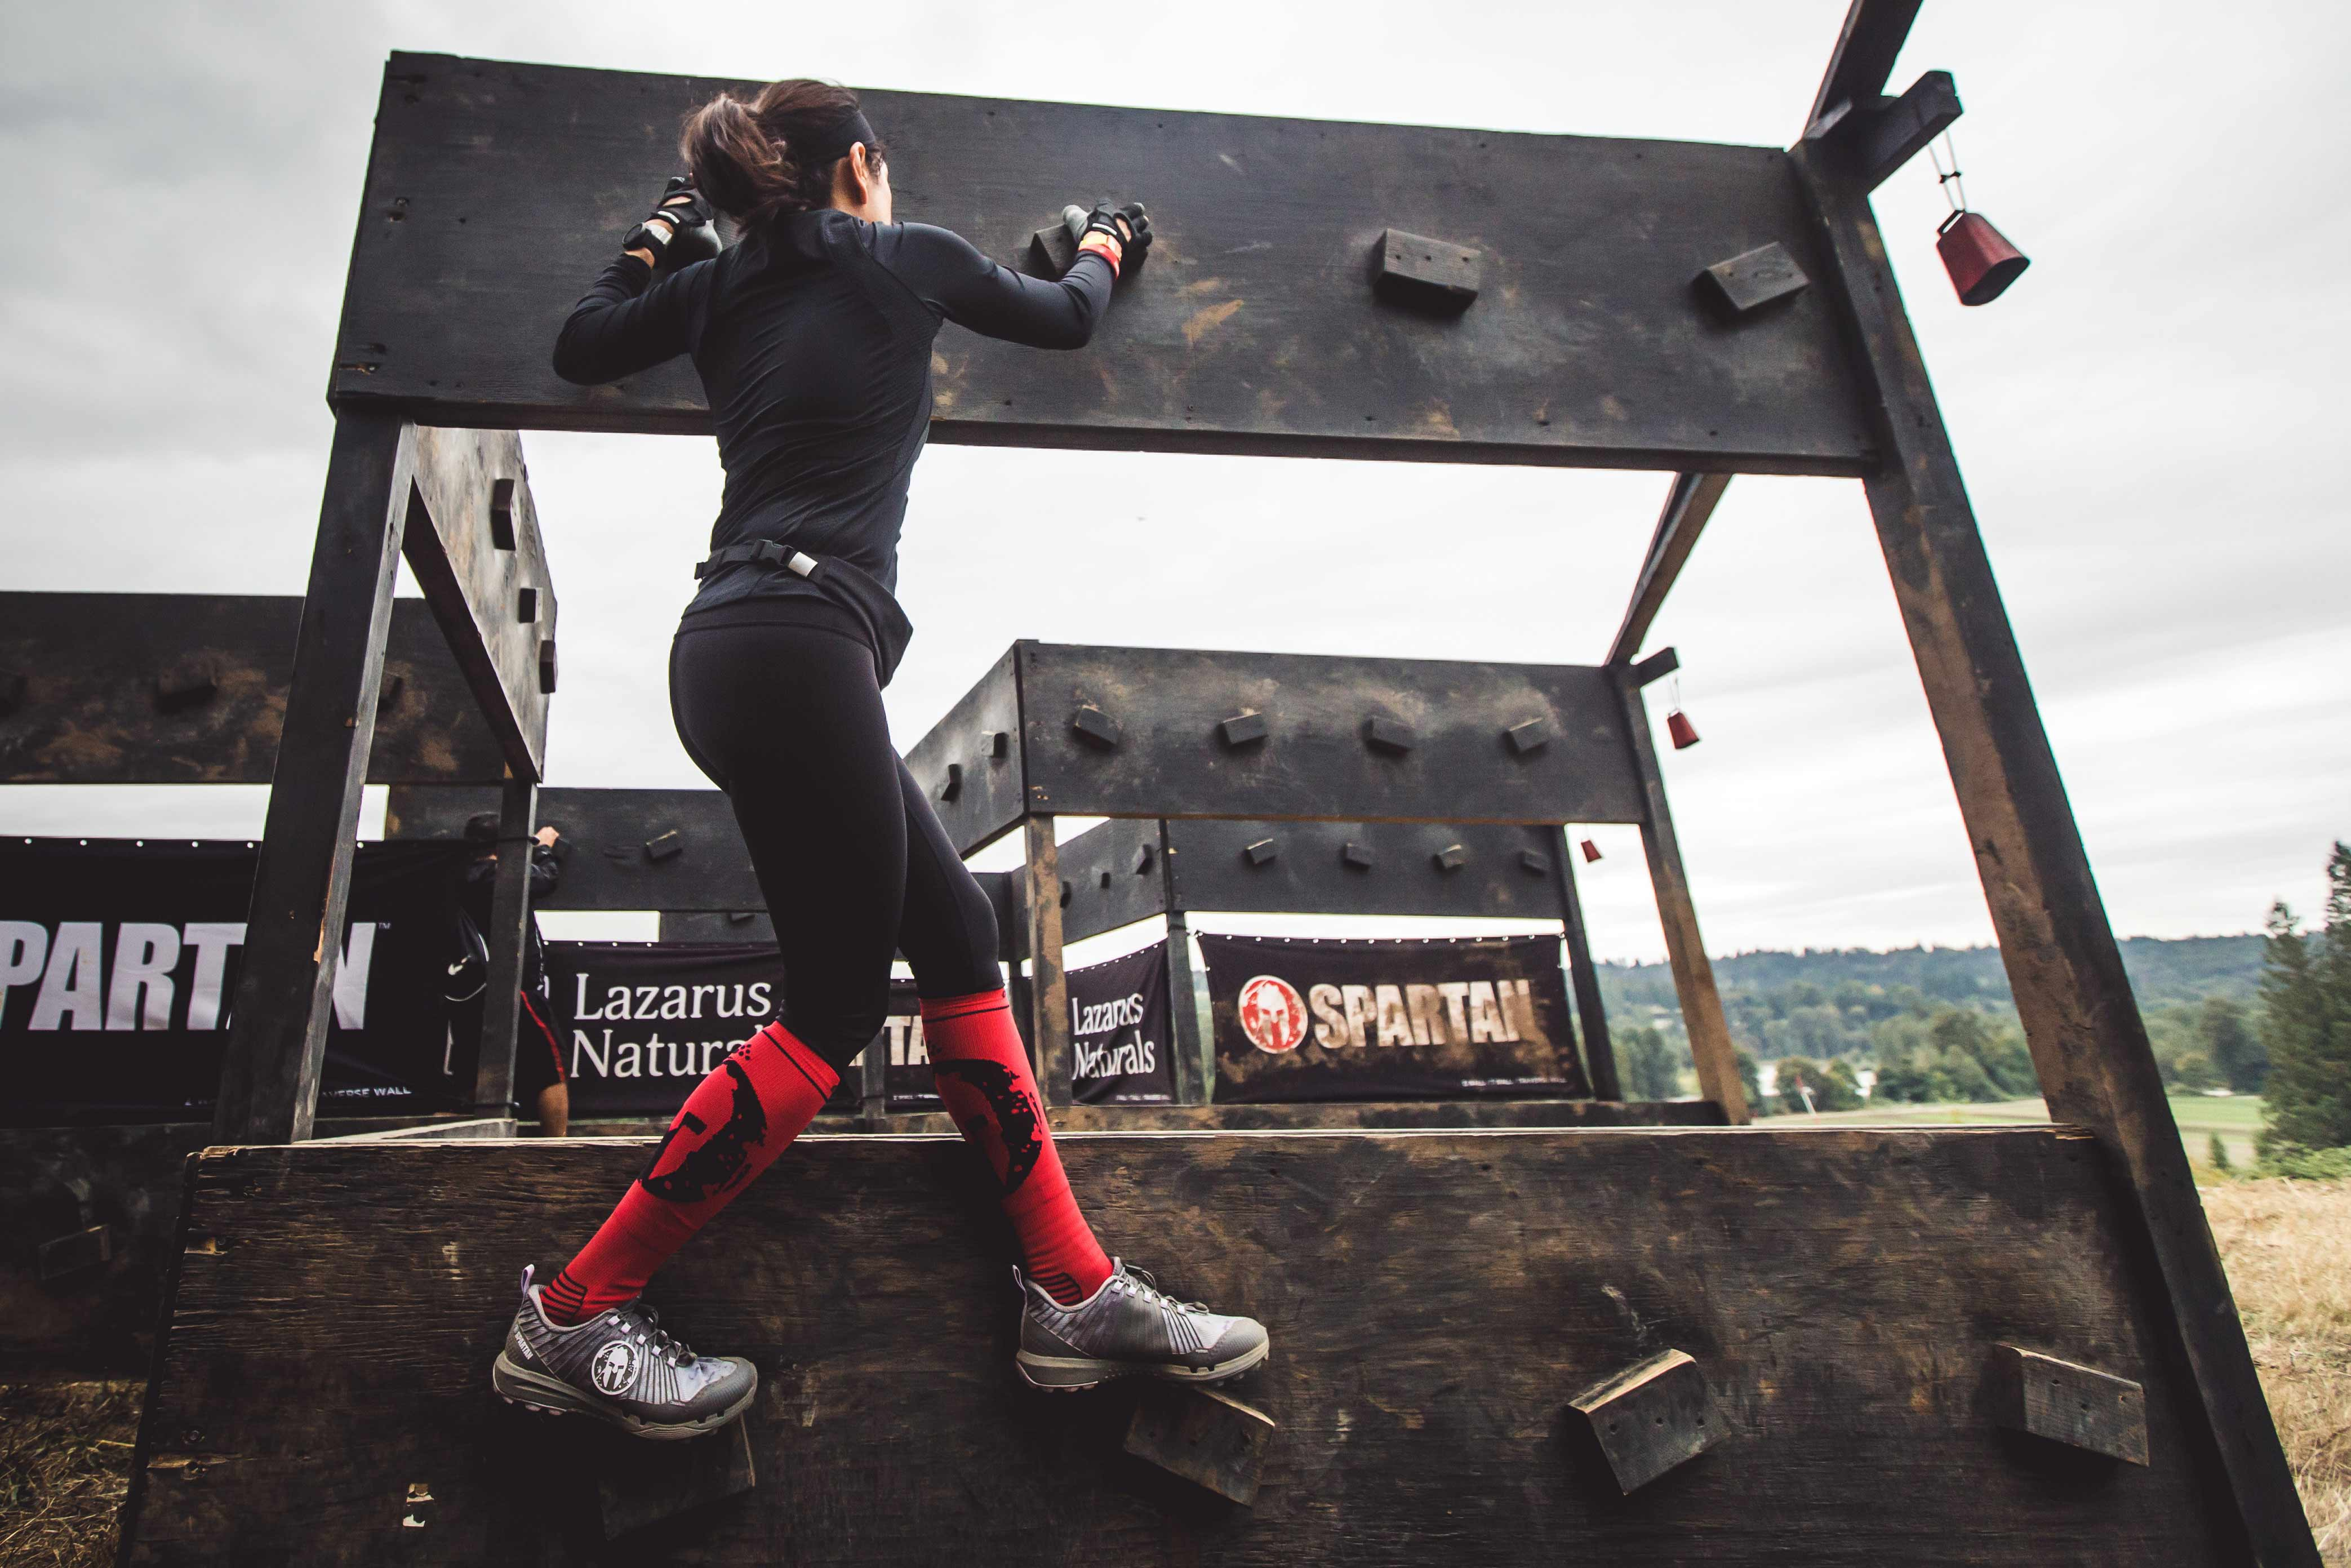 having prepared with ankle stability exercises, a Spartan racer completes an obstacle with no injuries